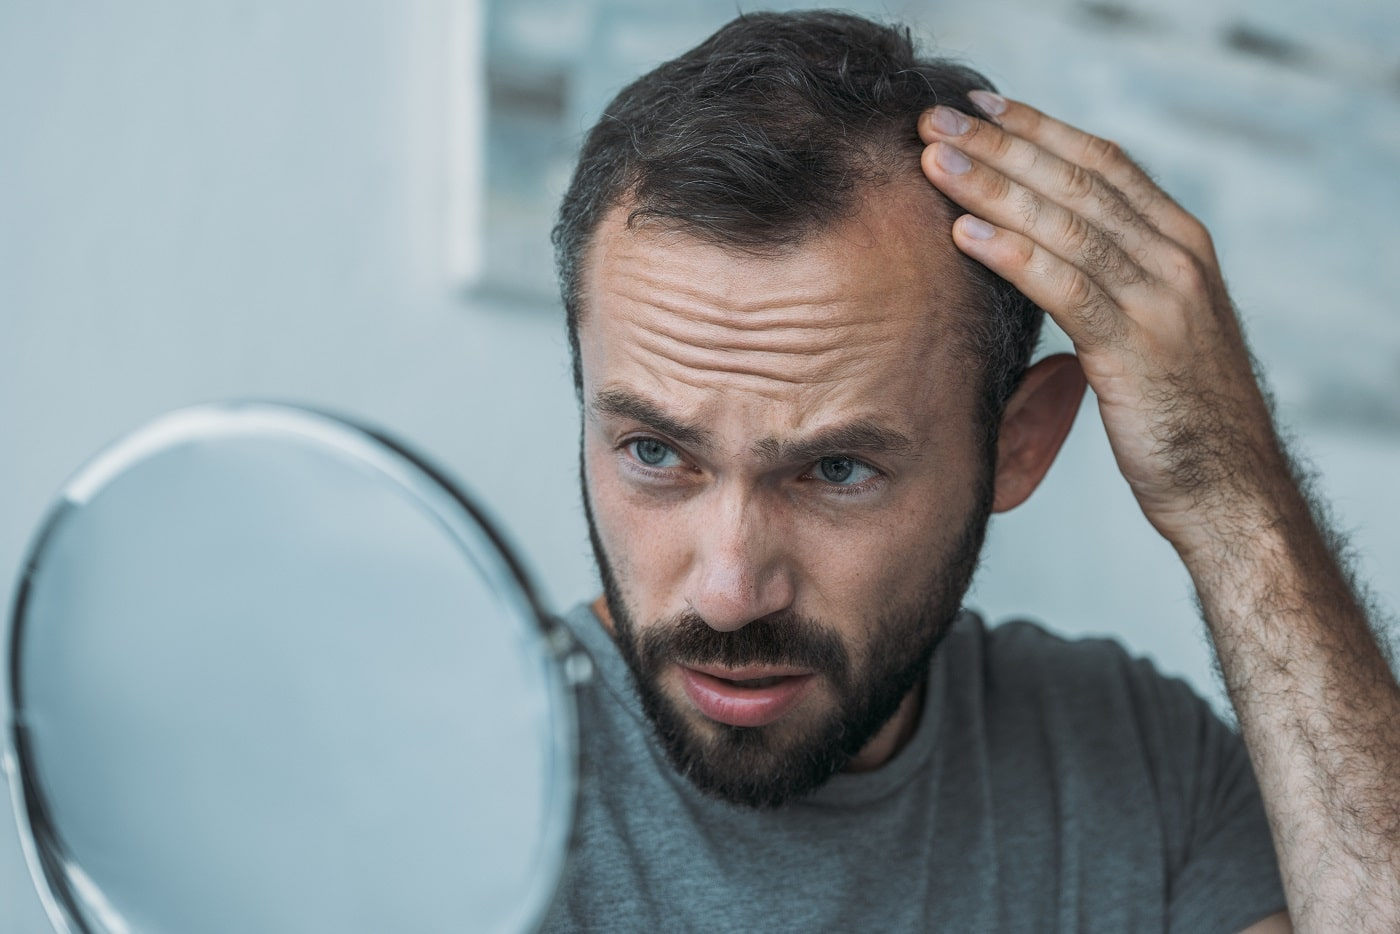 upset middle aged man with alopecia looking at mirror min